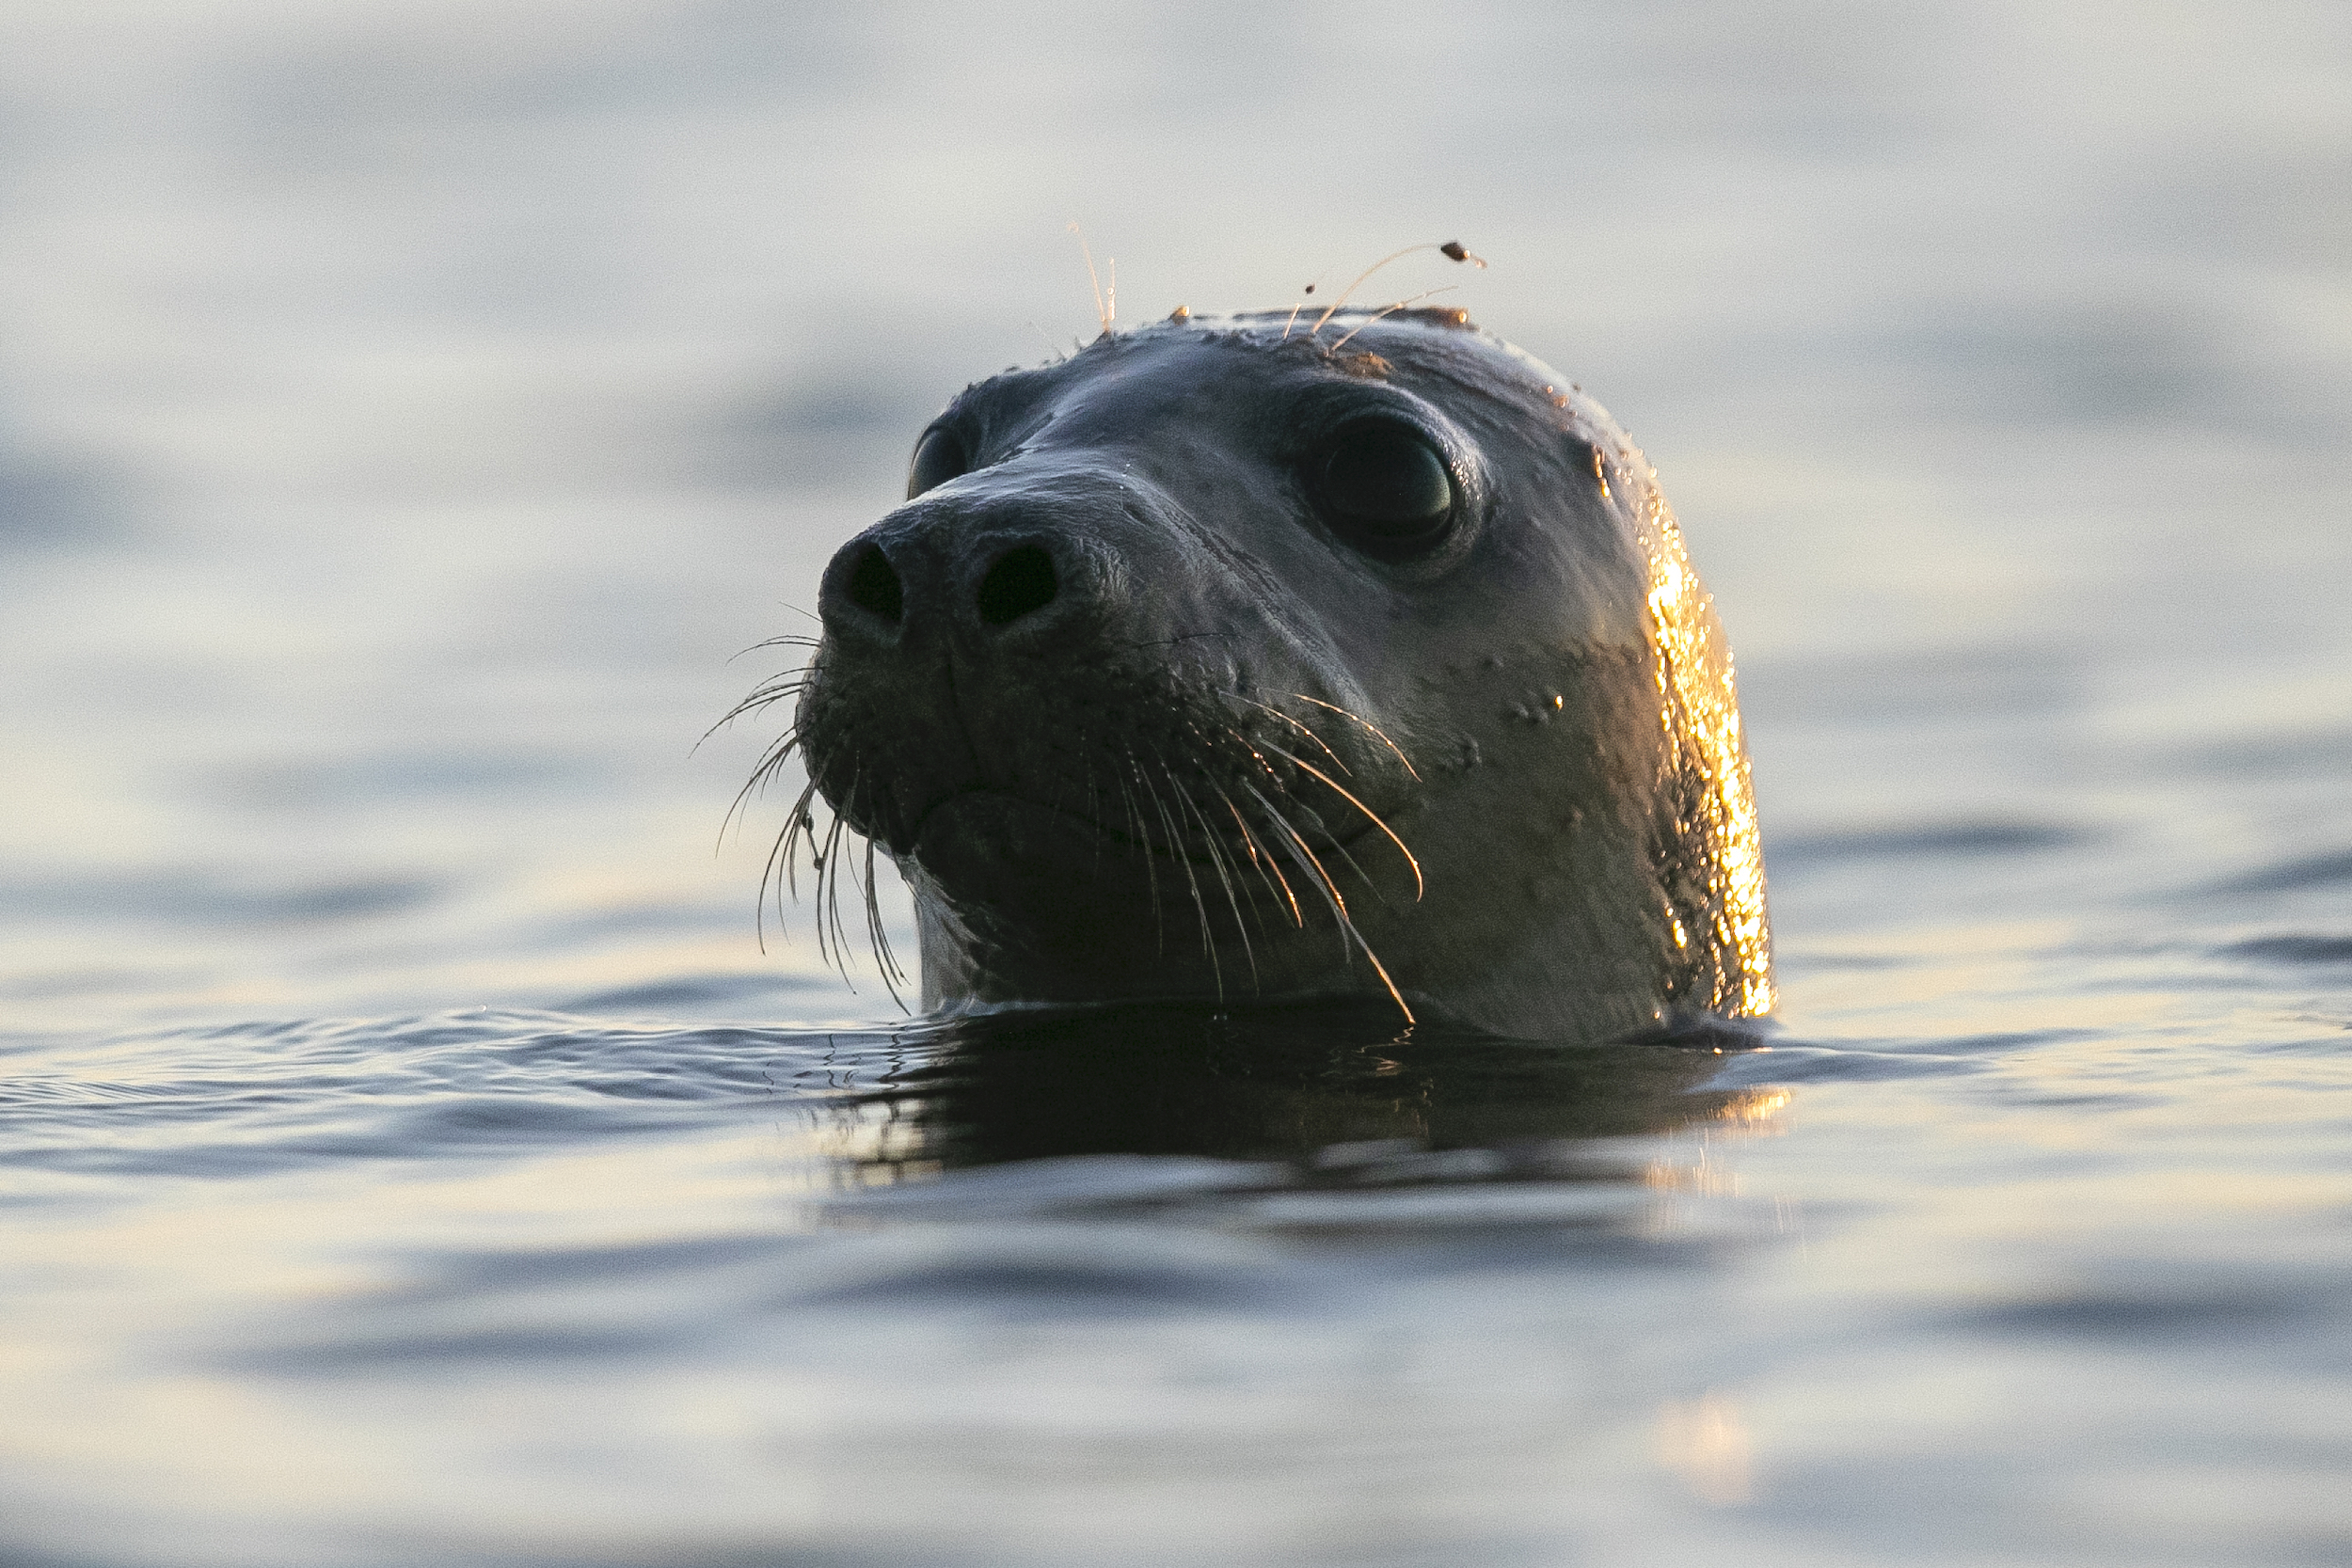 A seal pokes his head out of the water in Casco Bay, on July 30, 2020, off Portland, Maine.